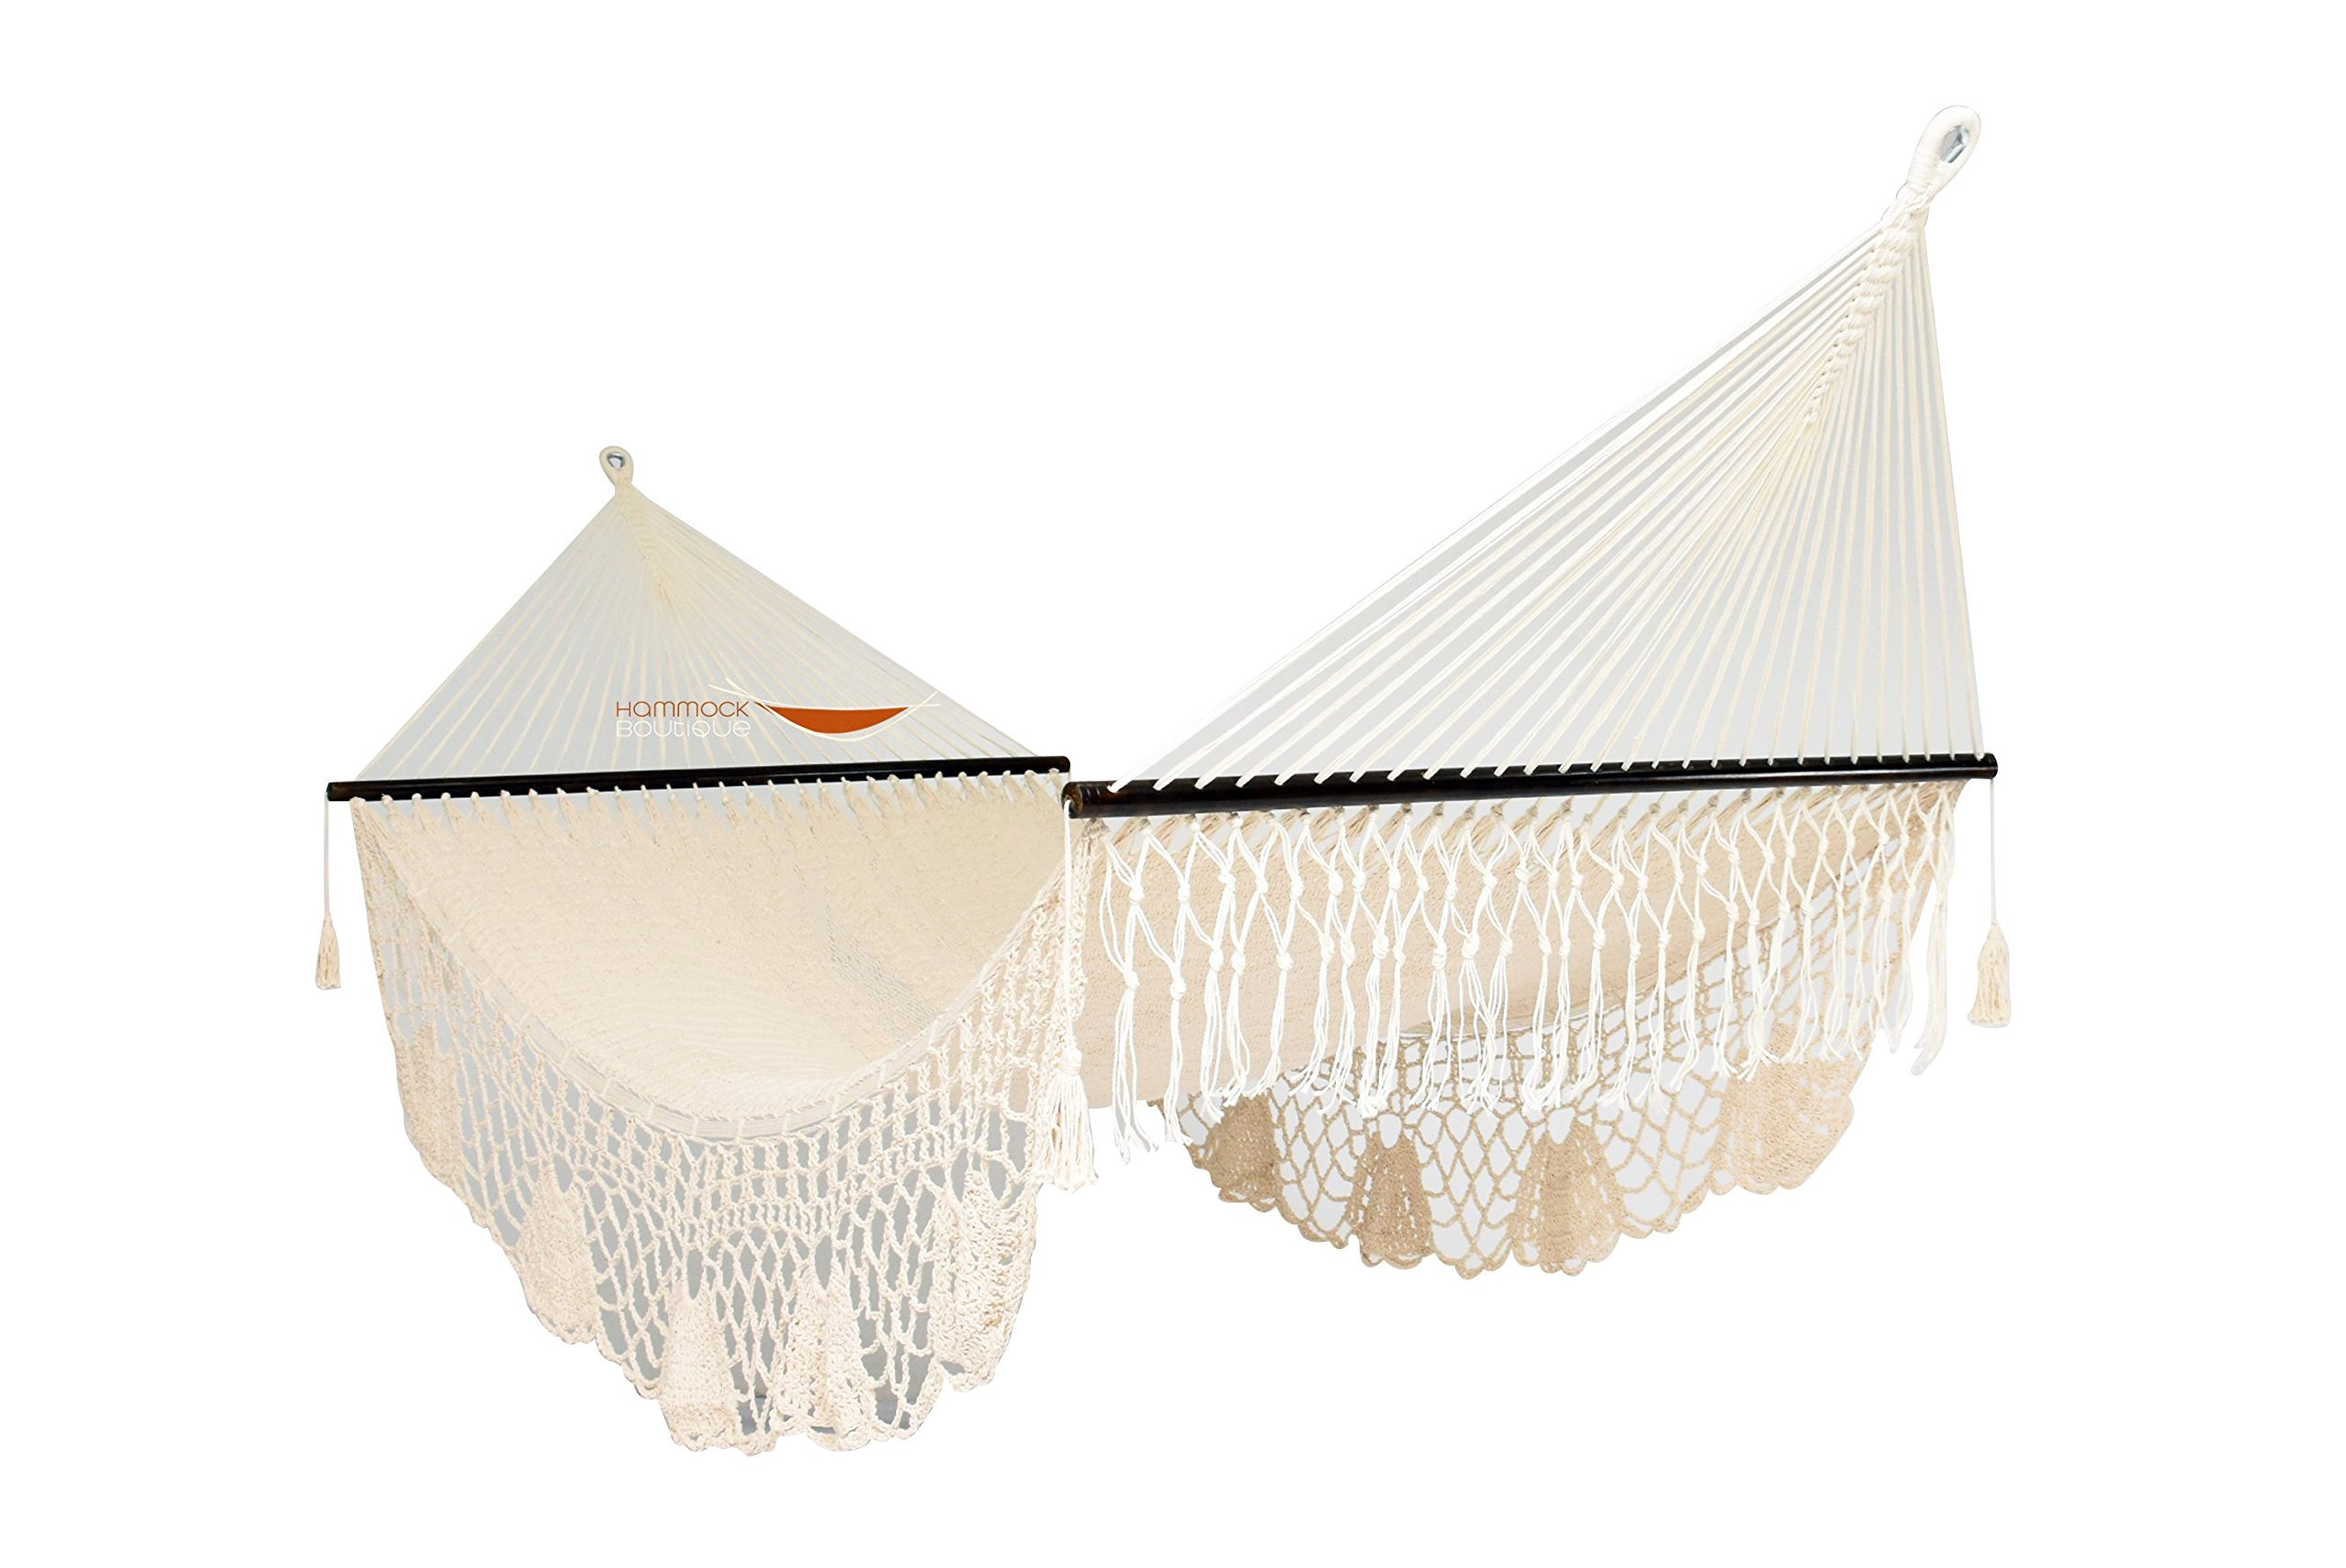 American De Luxe Style Mayan XL Hammock 100% in COTTON thick rope and Crochet handmade Fringe